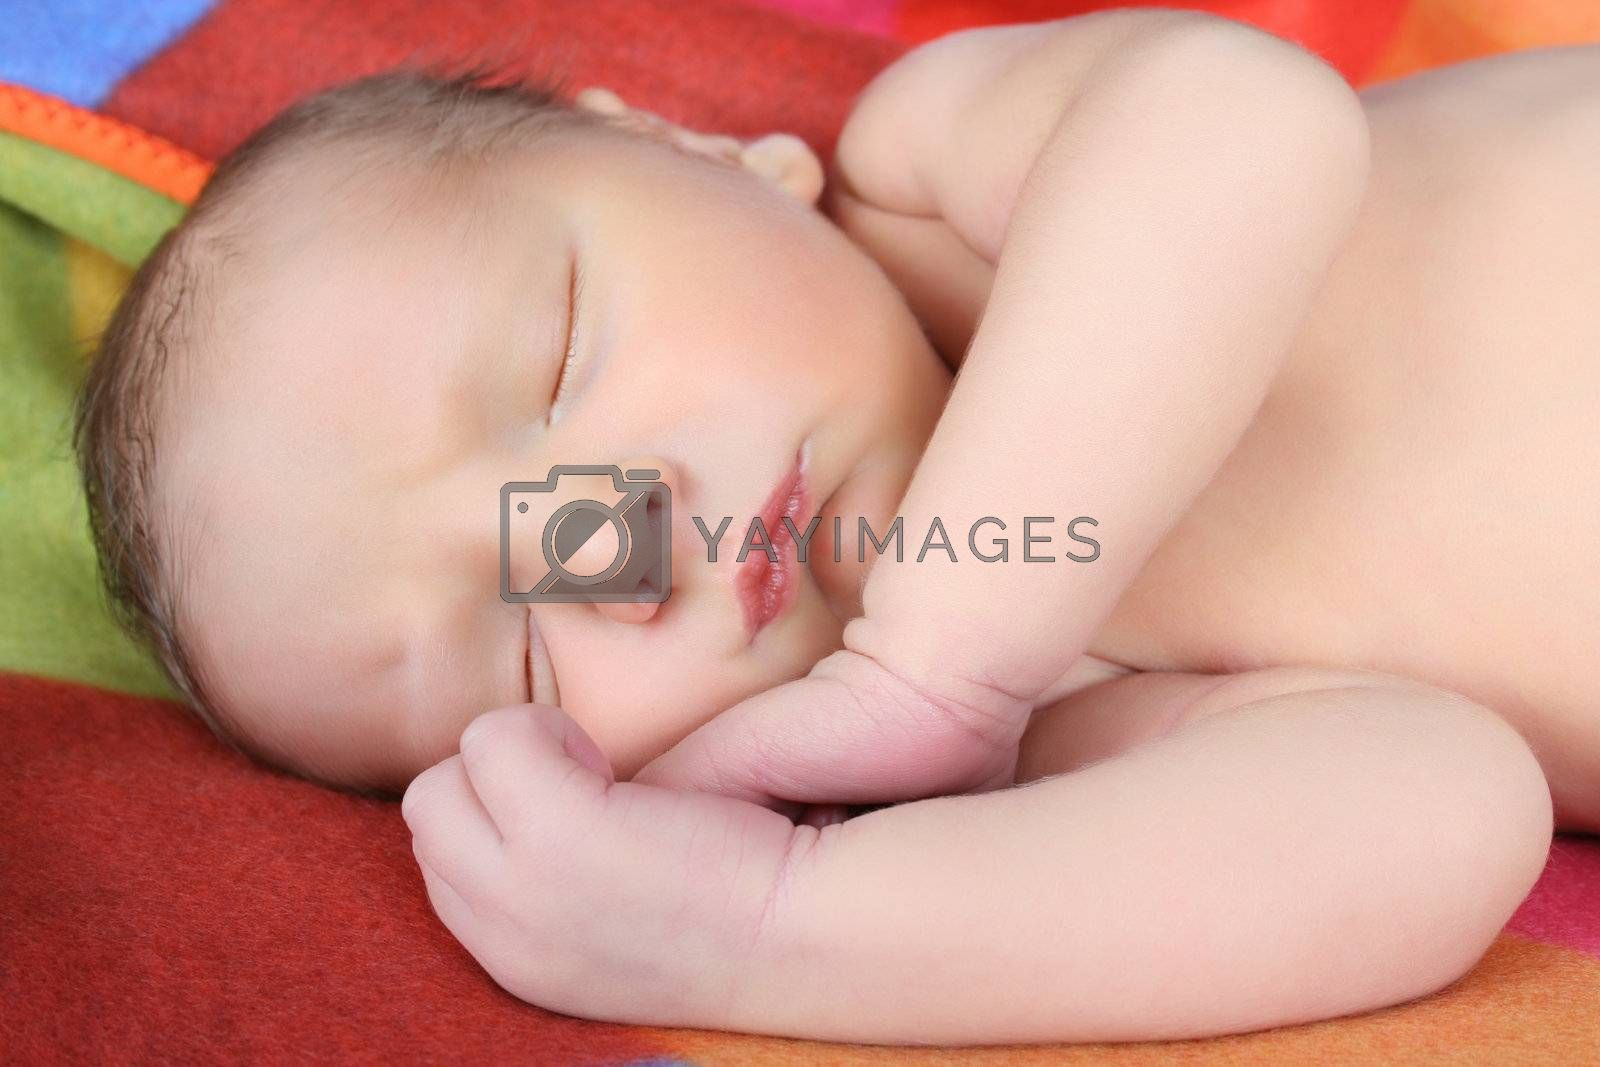 Newborn baby boy lying on a colorful blanket